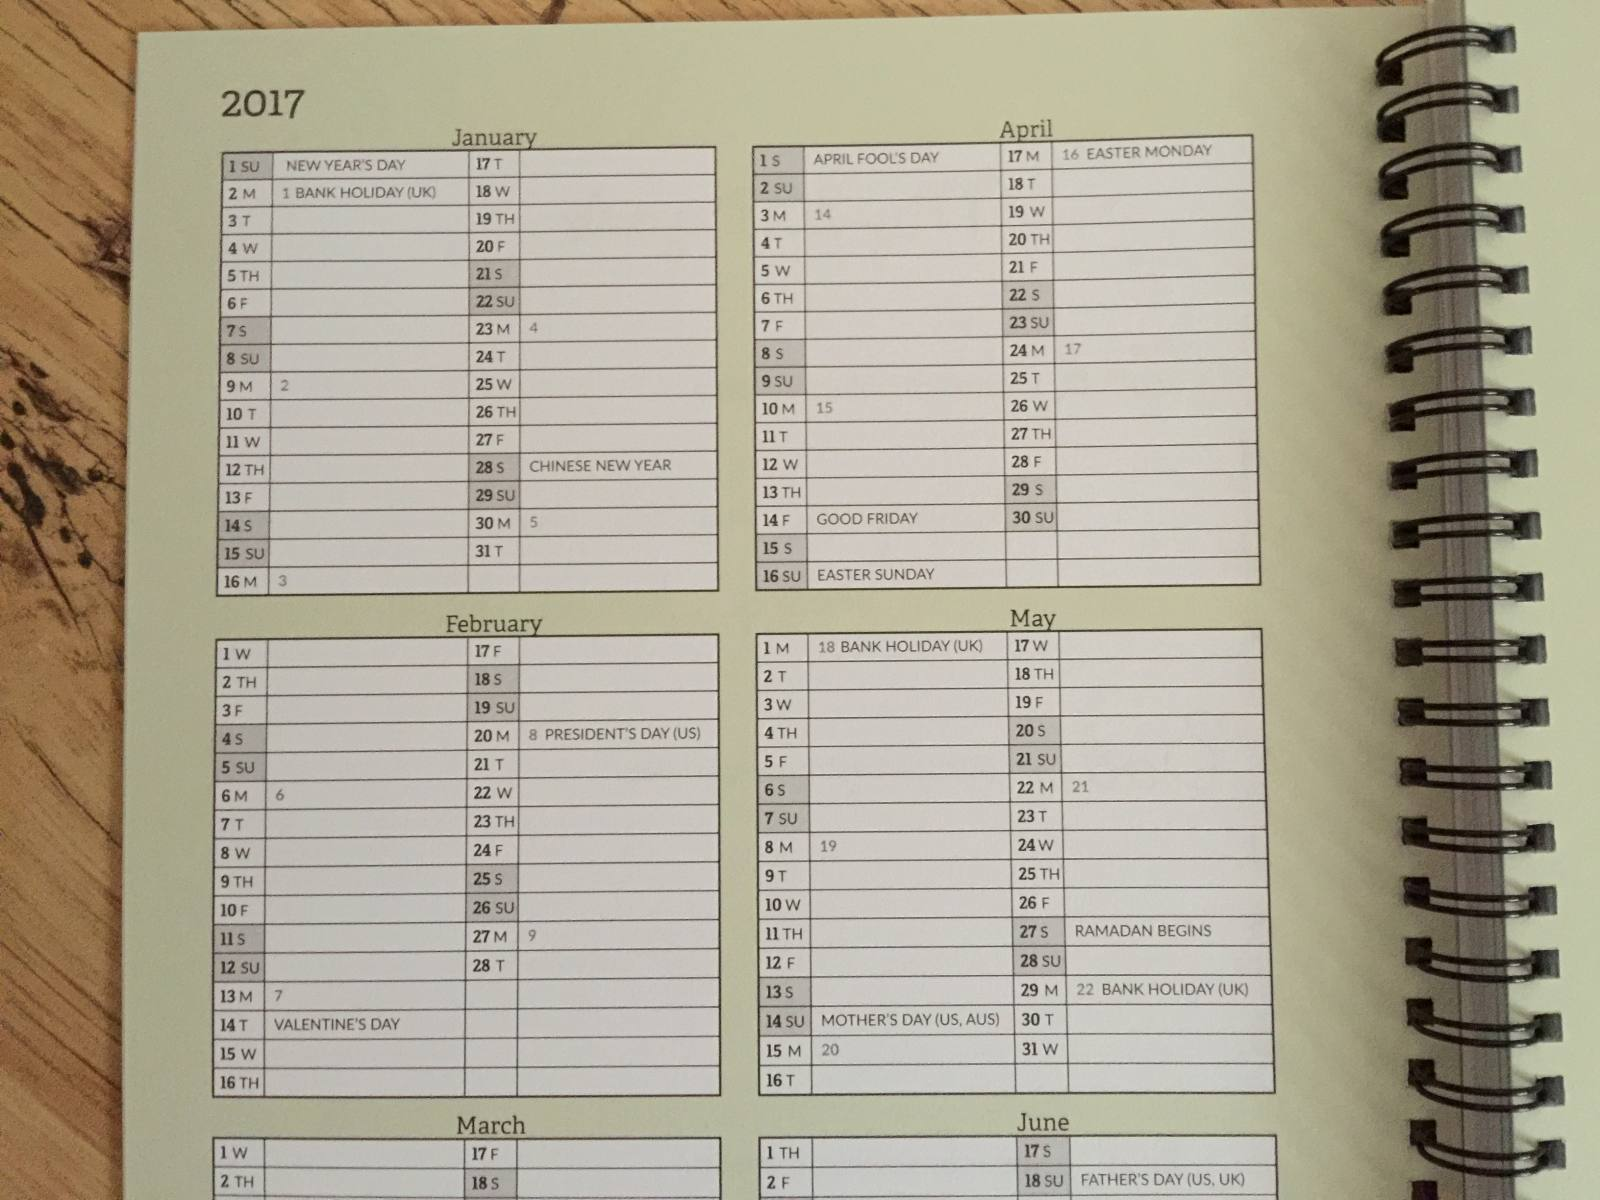 stick to stigu 2017 planner has rip off corners to find your place easily